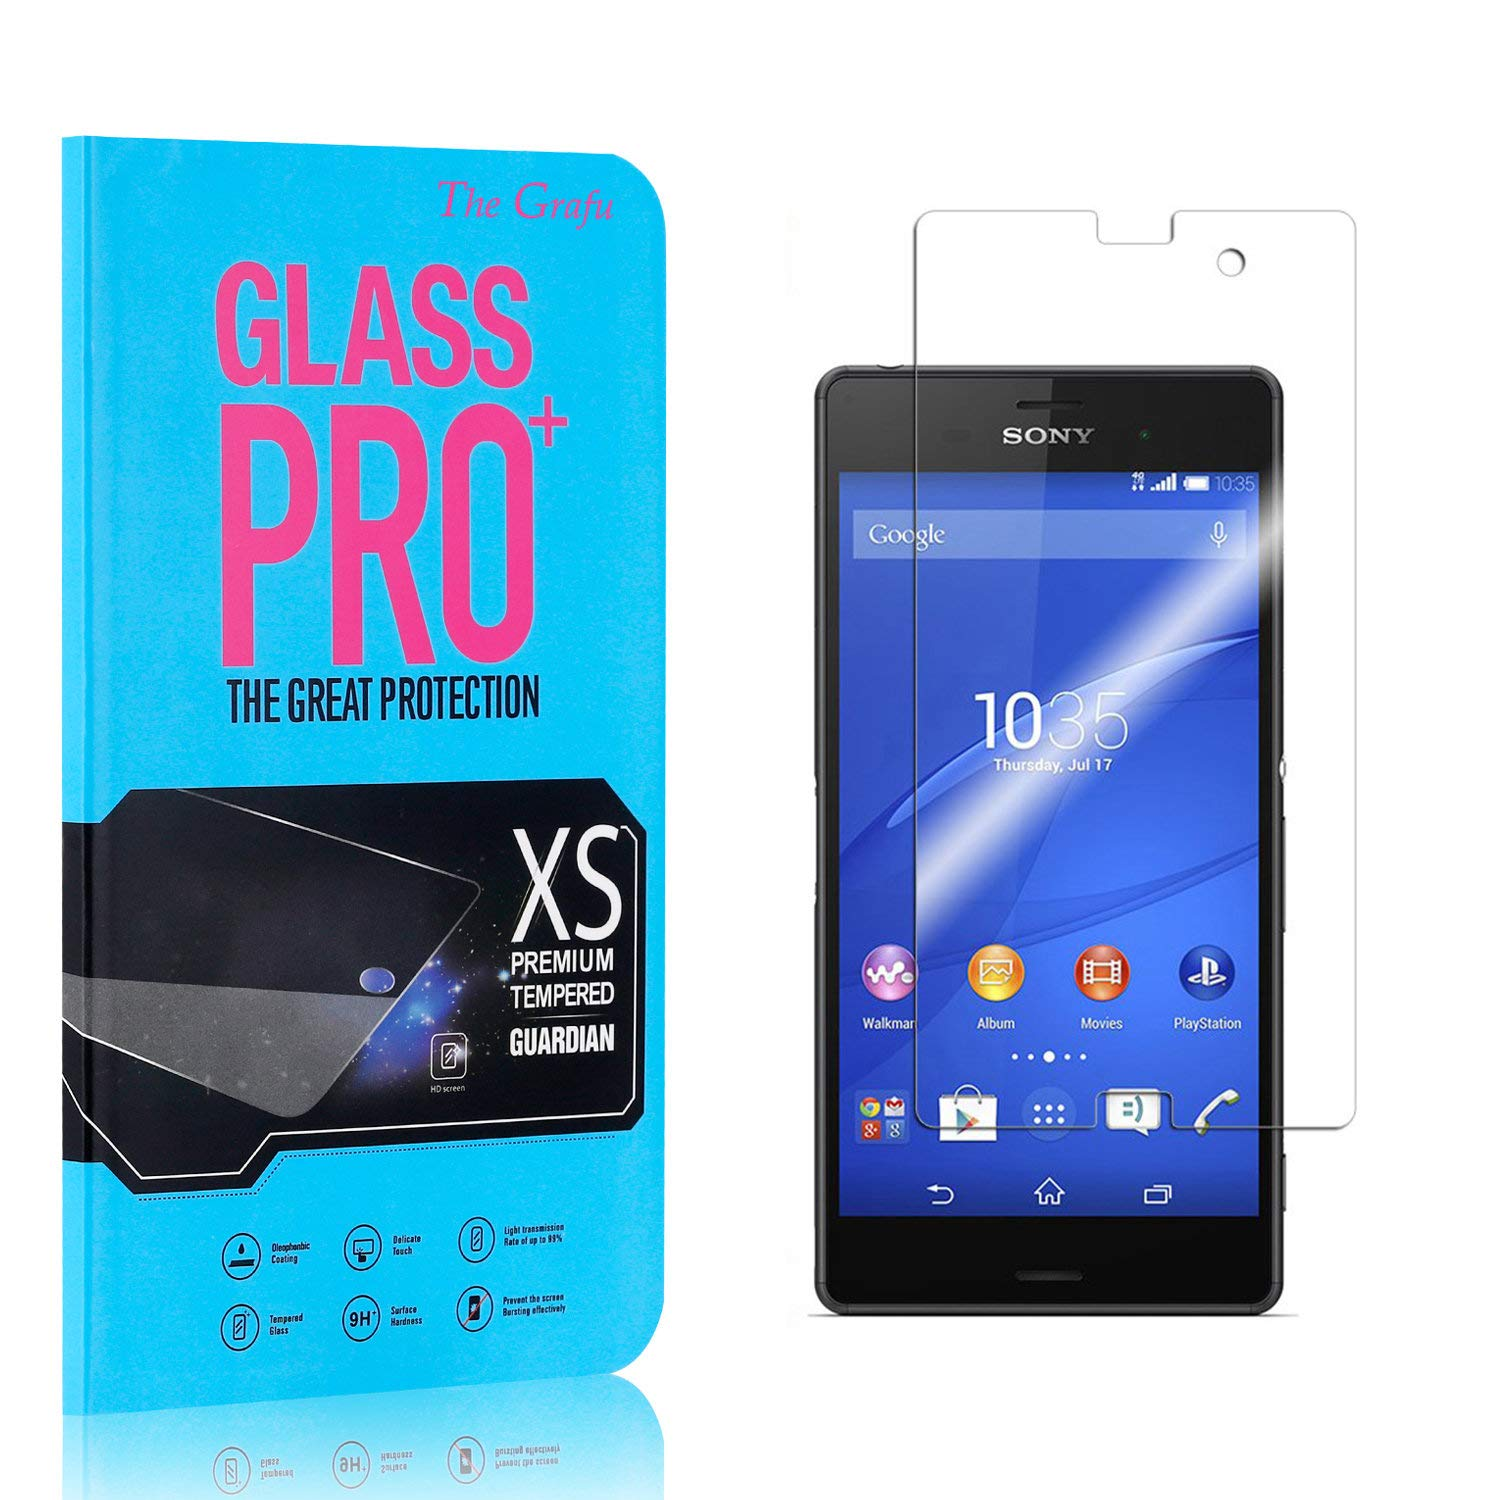 Screen Protector Compatible with Sony Xperia Z3 Compact The Grafu Anti Fingerprint Tempered Glass Screen Protector HD Screen Protector for Sony Xperia Z3 Compact 1 Pack